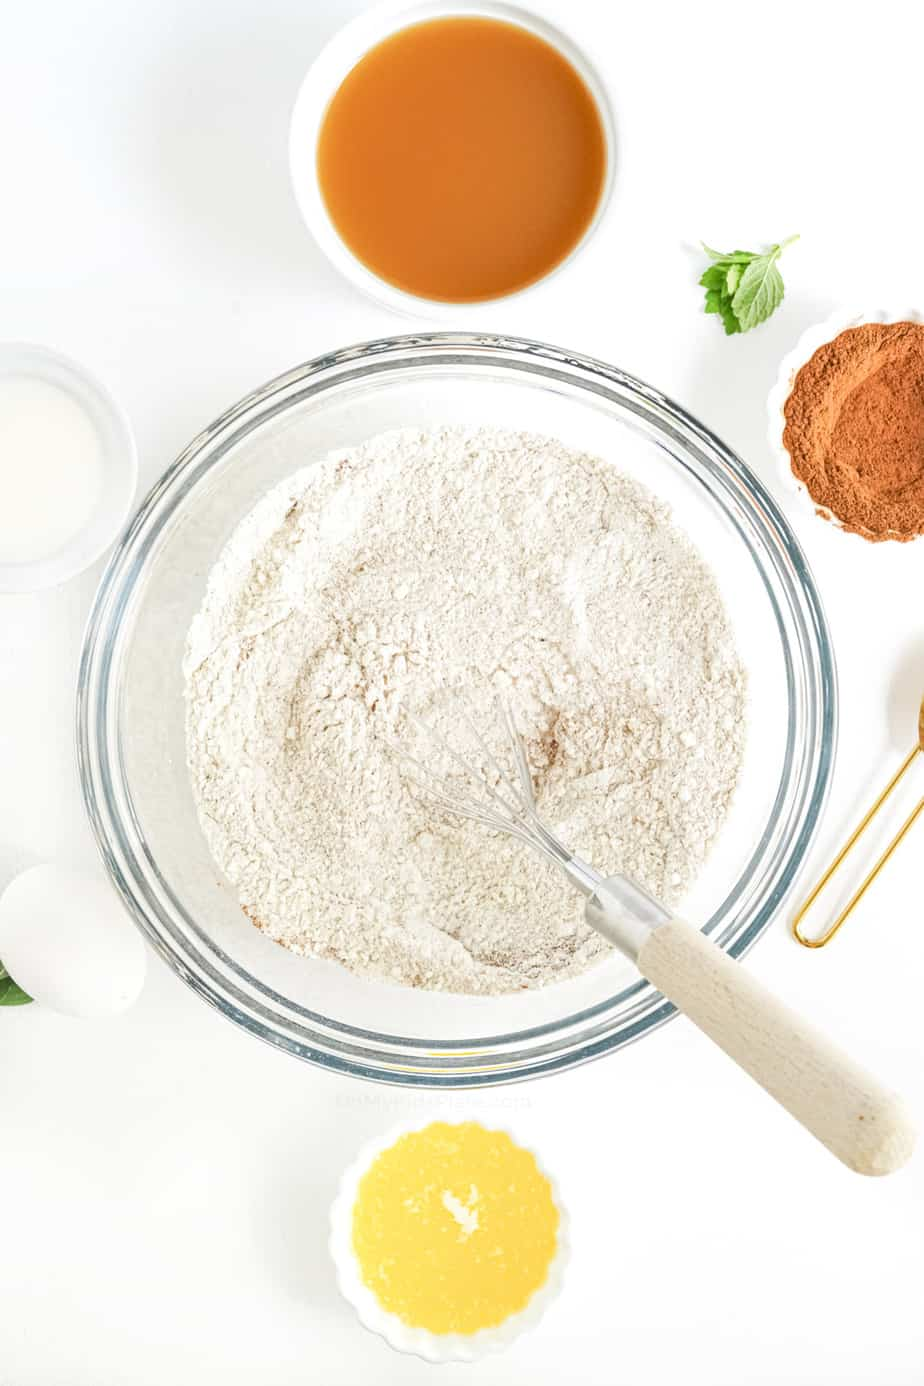 Mixing dry ingredients for doughnut batter from overhead with apple cider, cinnamon and melted butter in bowls nearby.